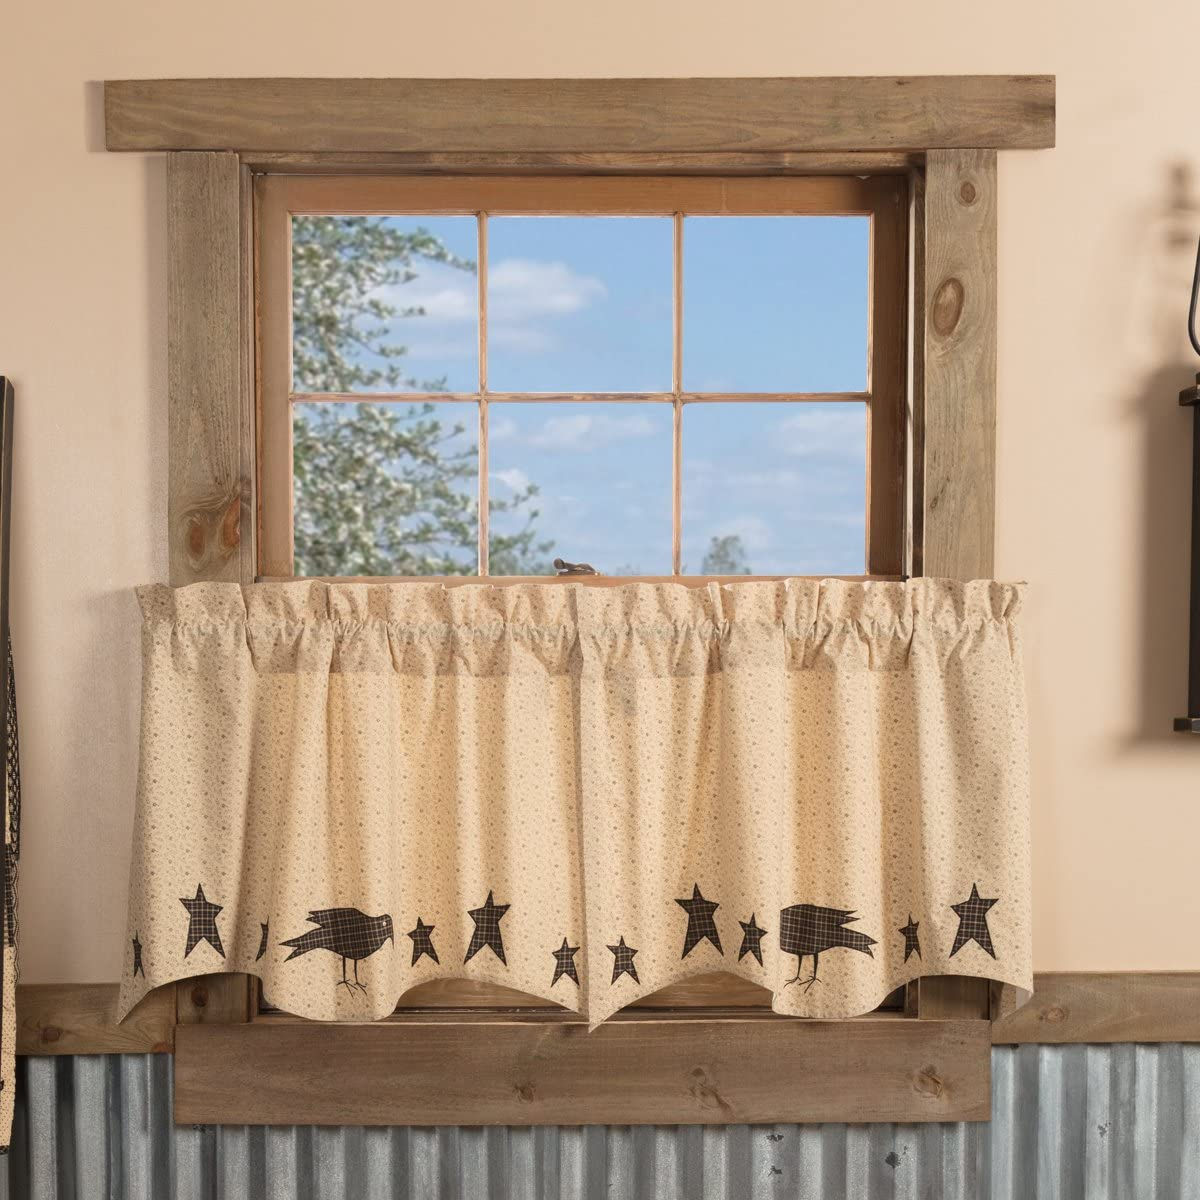 VHC Brands Primitive-Kitchen Curtains Prim Grove Crow-Rod Pocket Cotton Appliqued Star 24×36 Tier Pair, Dark Creme Tan